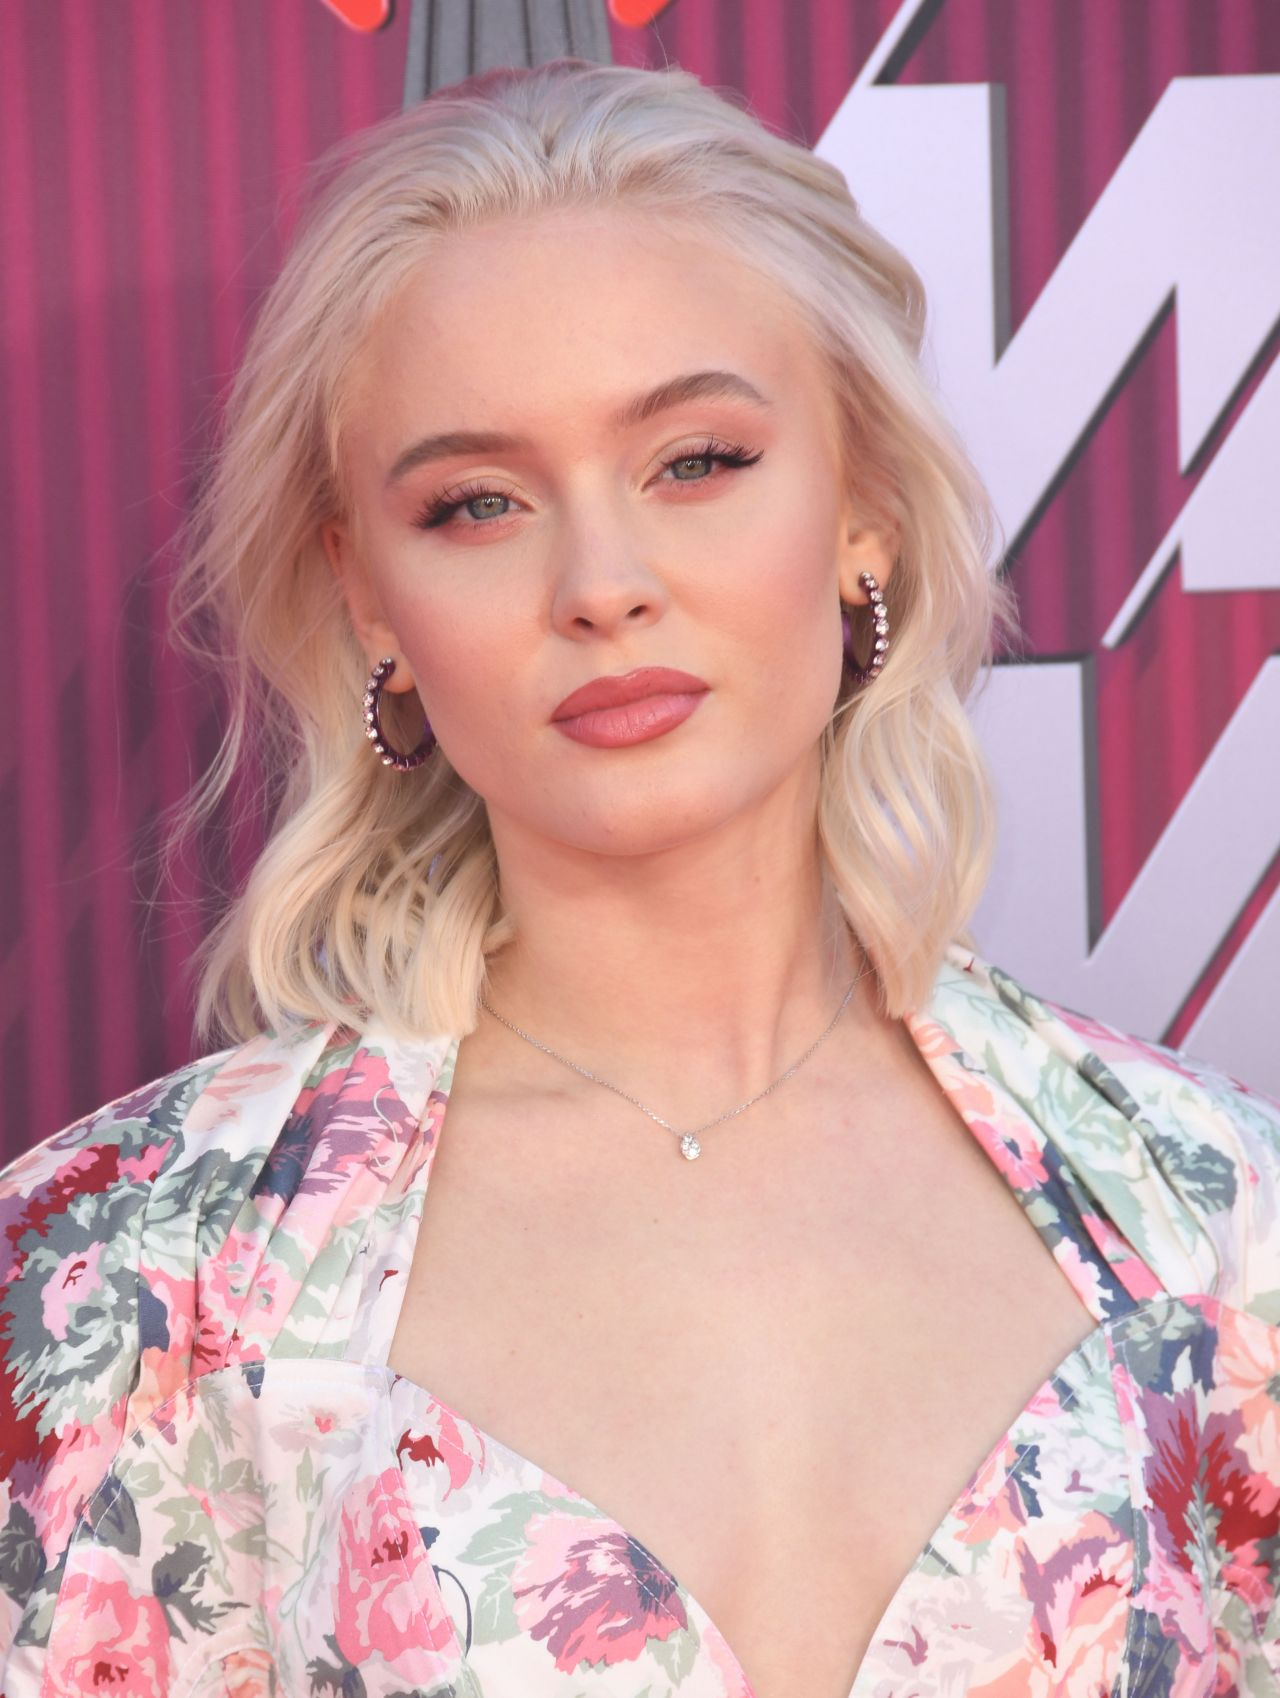 Zara Larsson Hot Makeup - Zara Larsson Hot Makeup